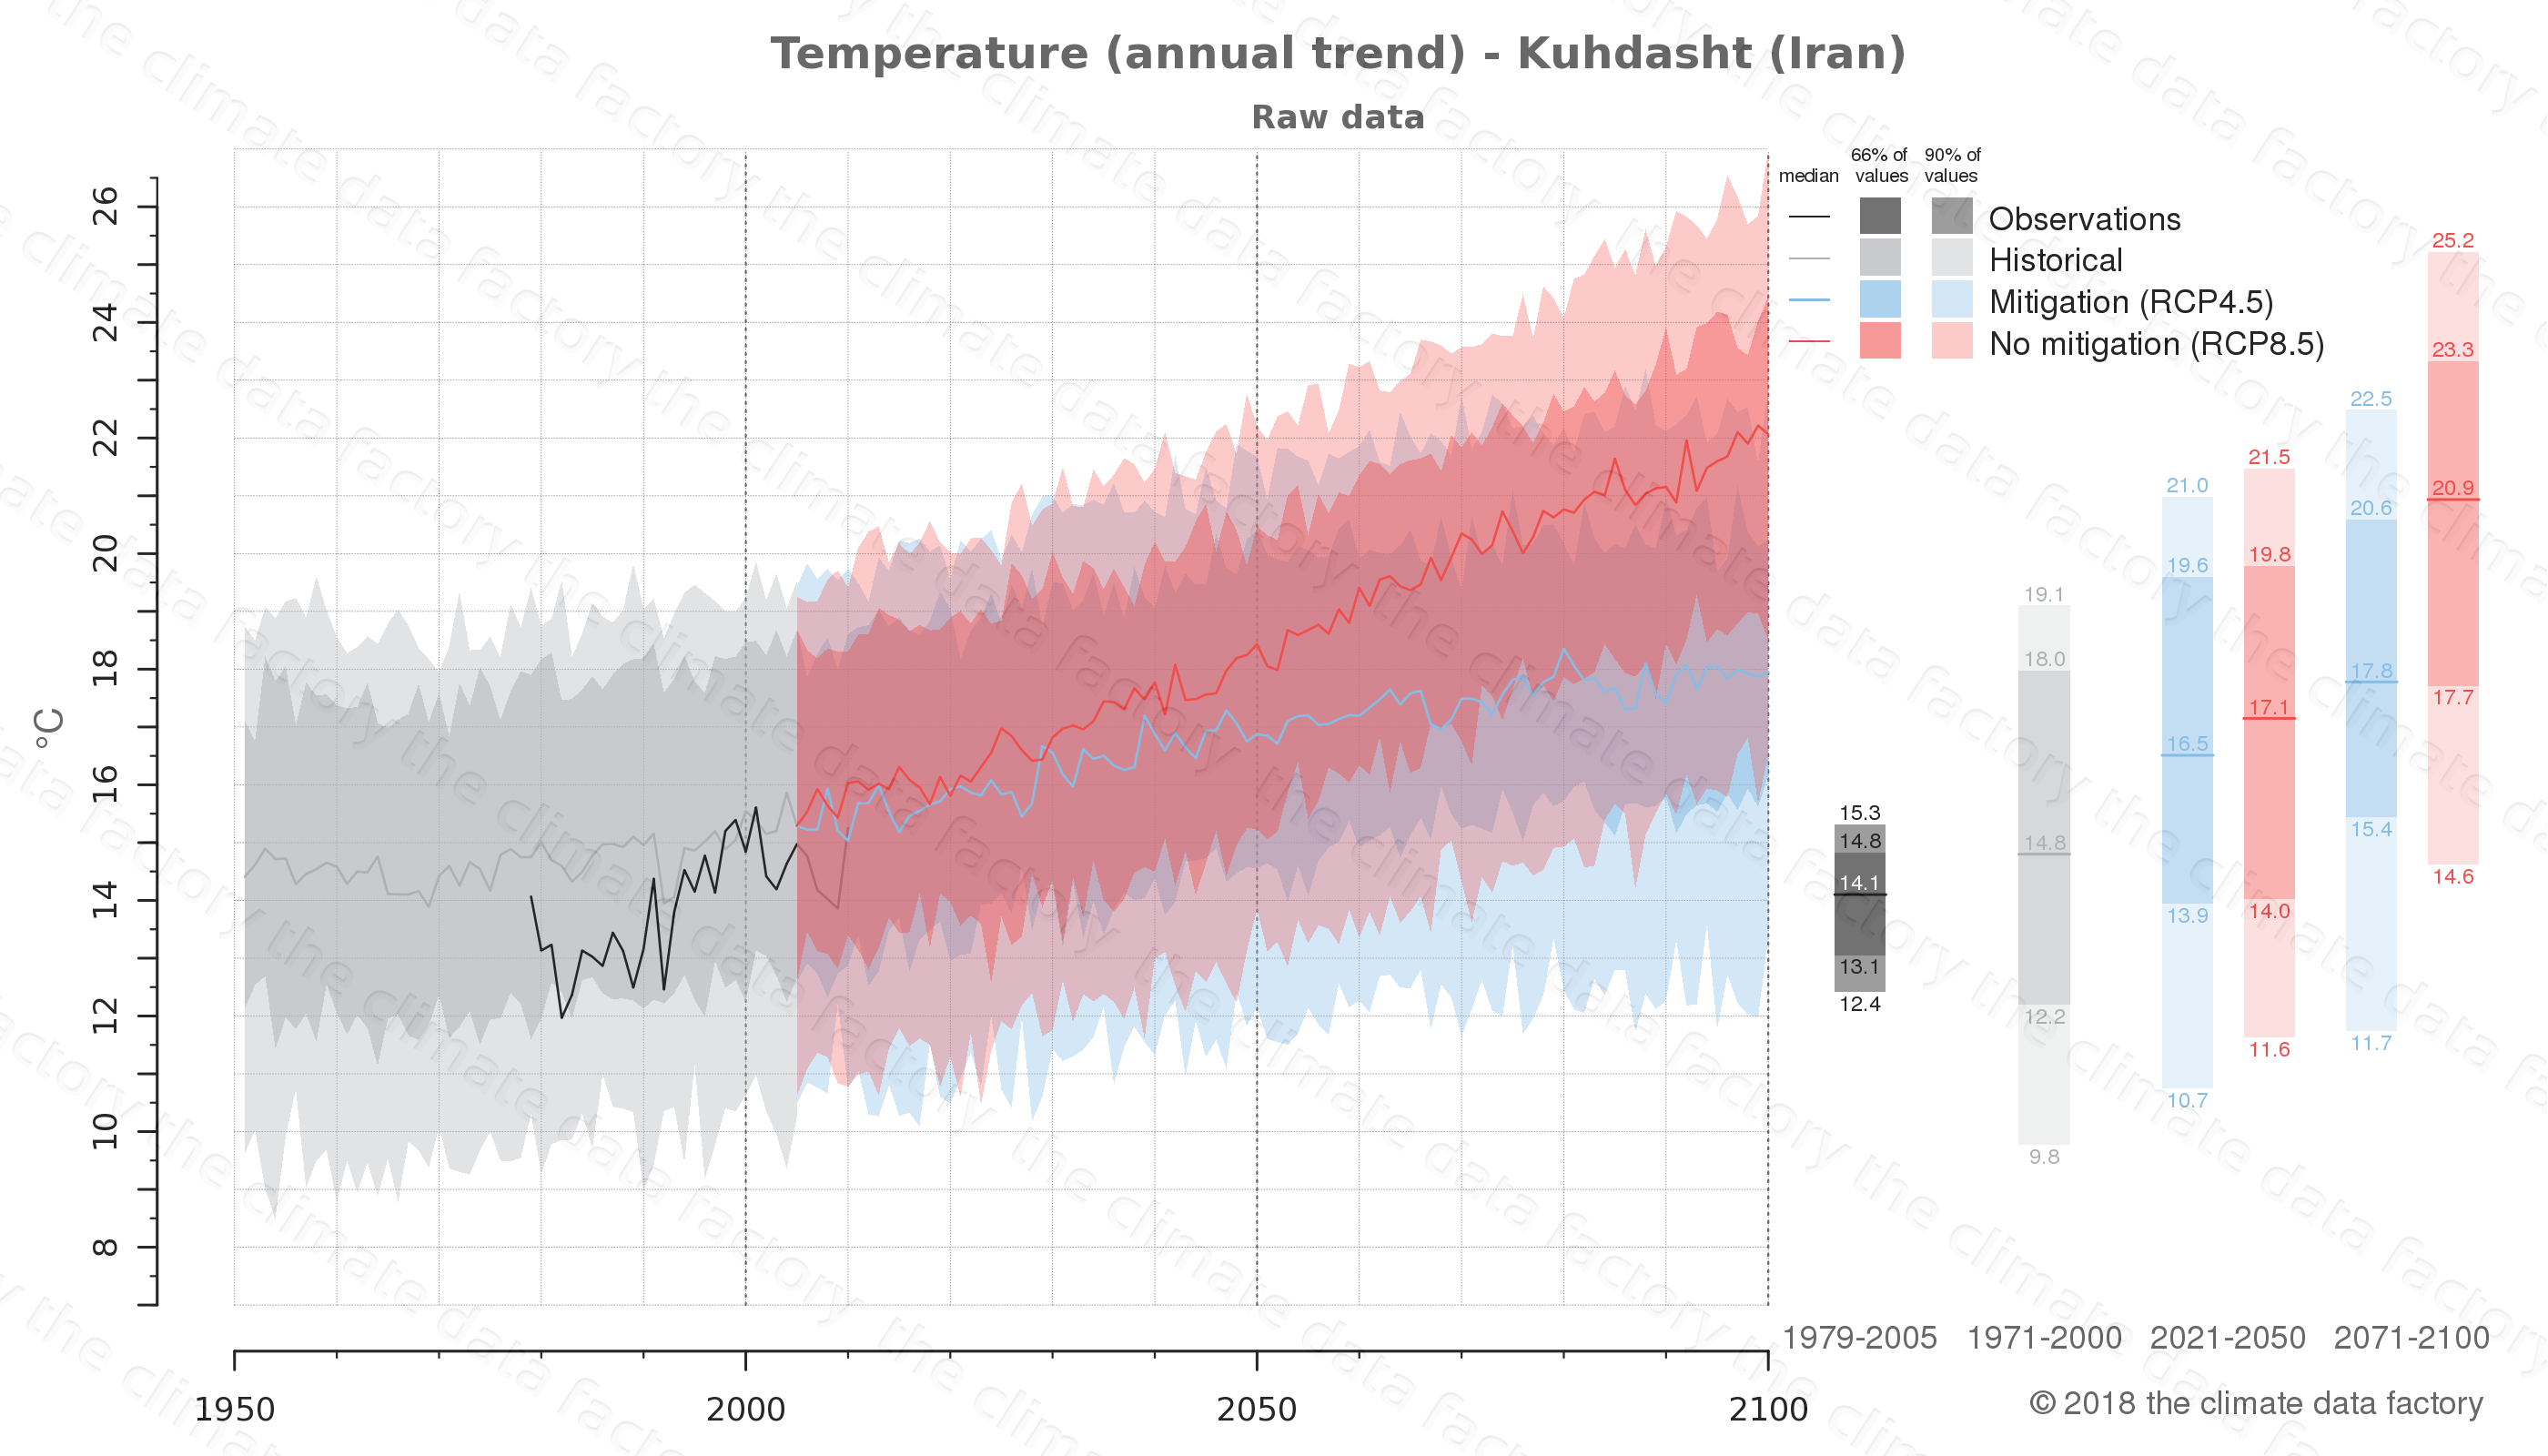 climate change data policy adaptation climate graph city data temperature kuhdasht iran